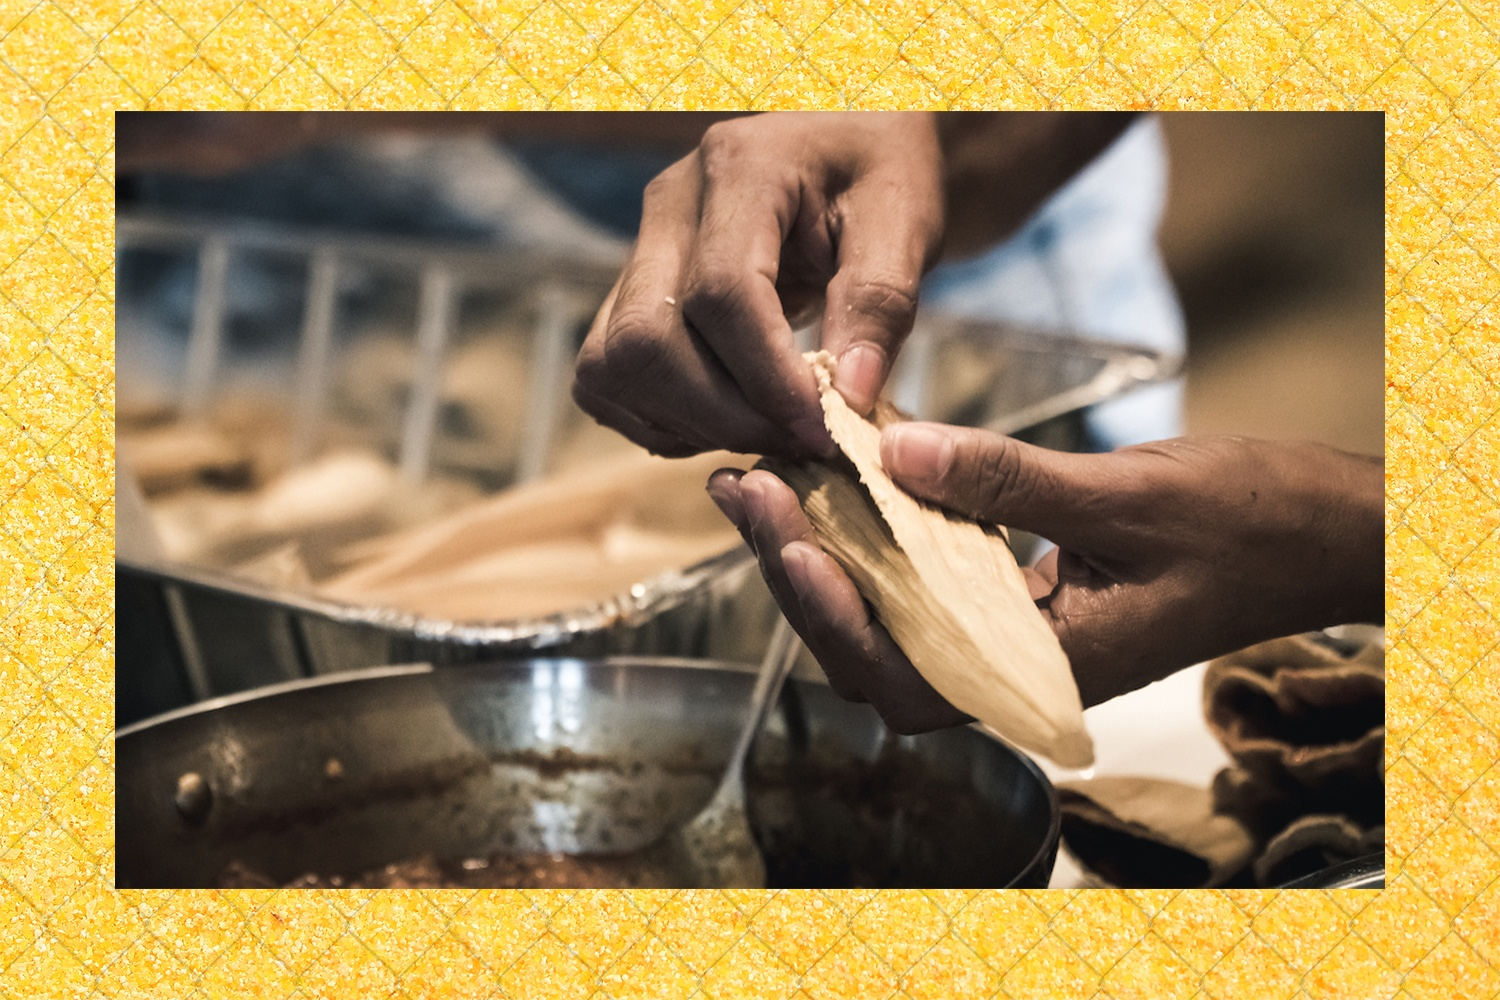 Brown hands prepare tamales with a fence and cornmeal border. June 2021